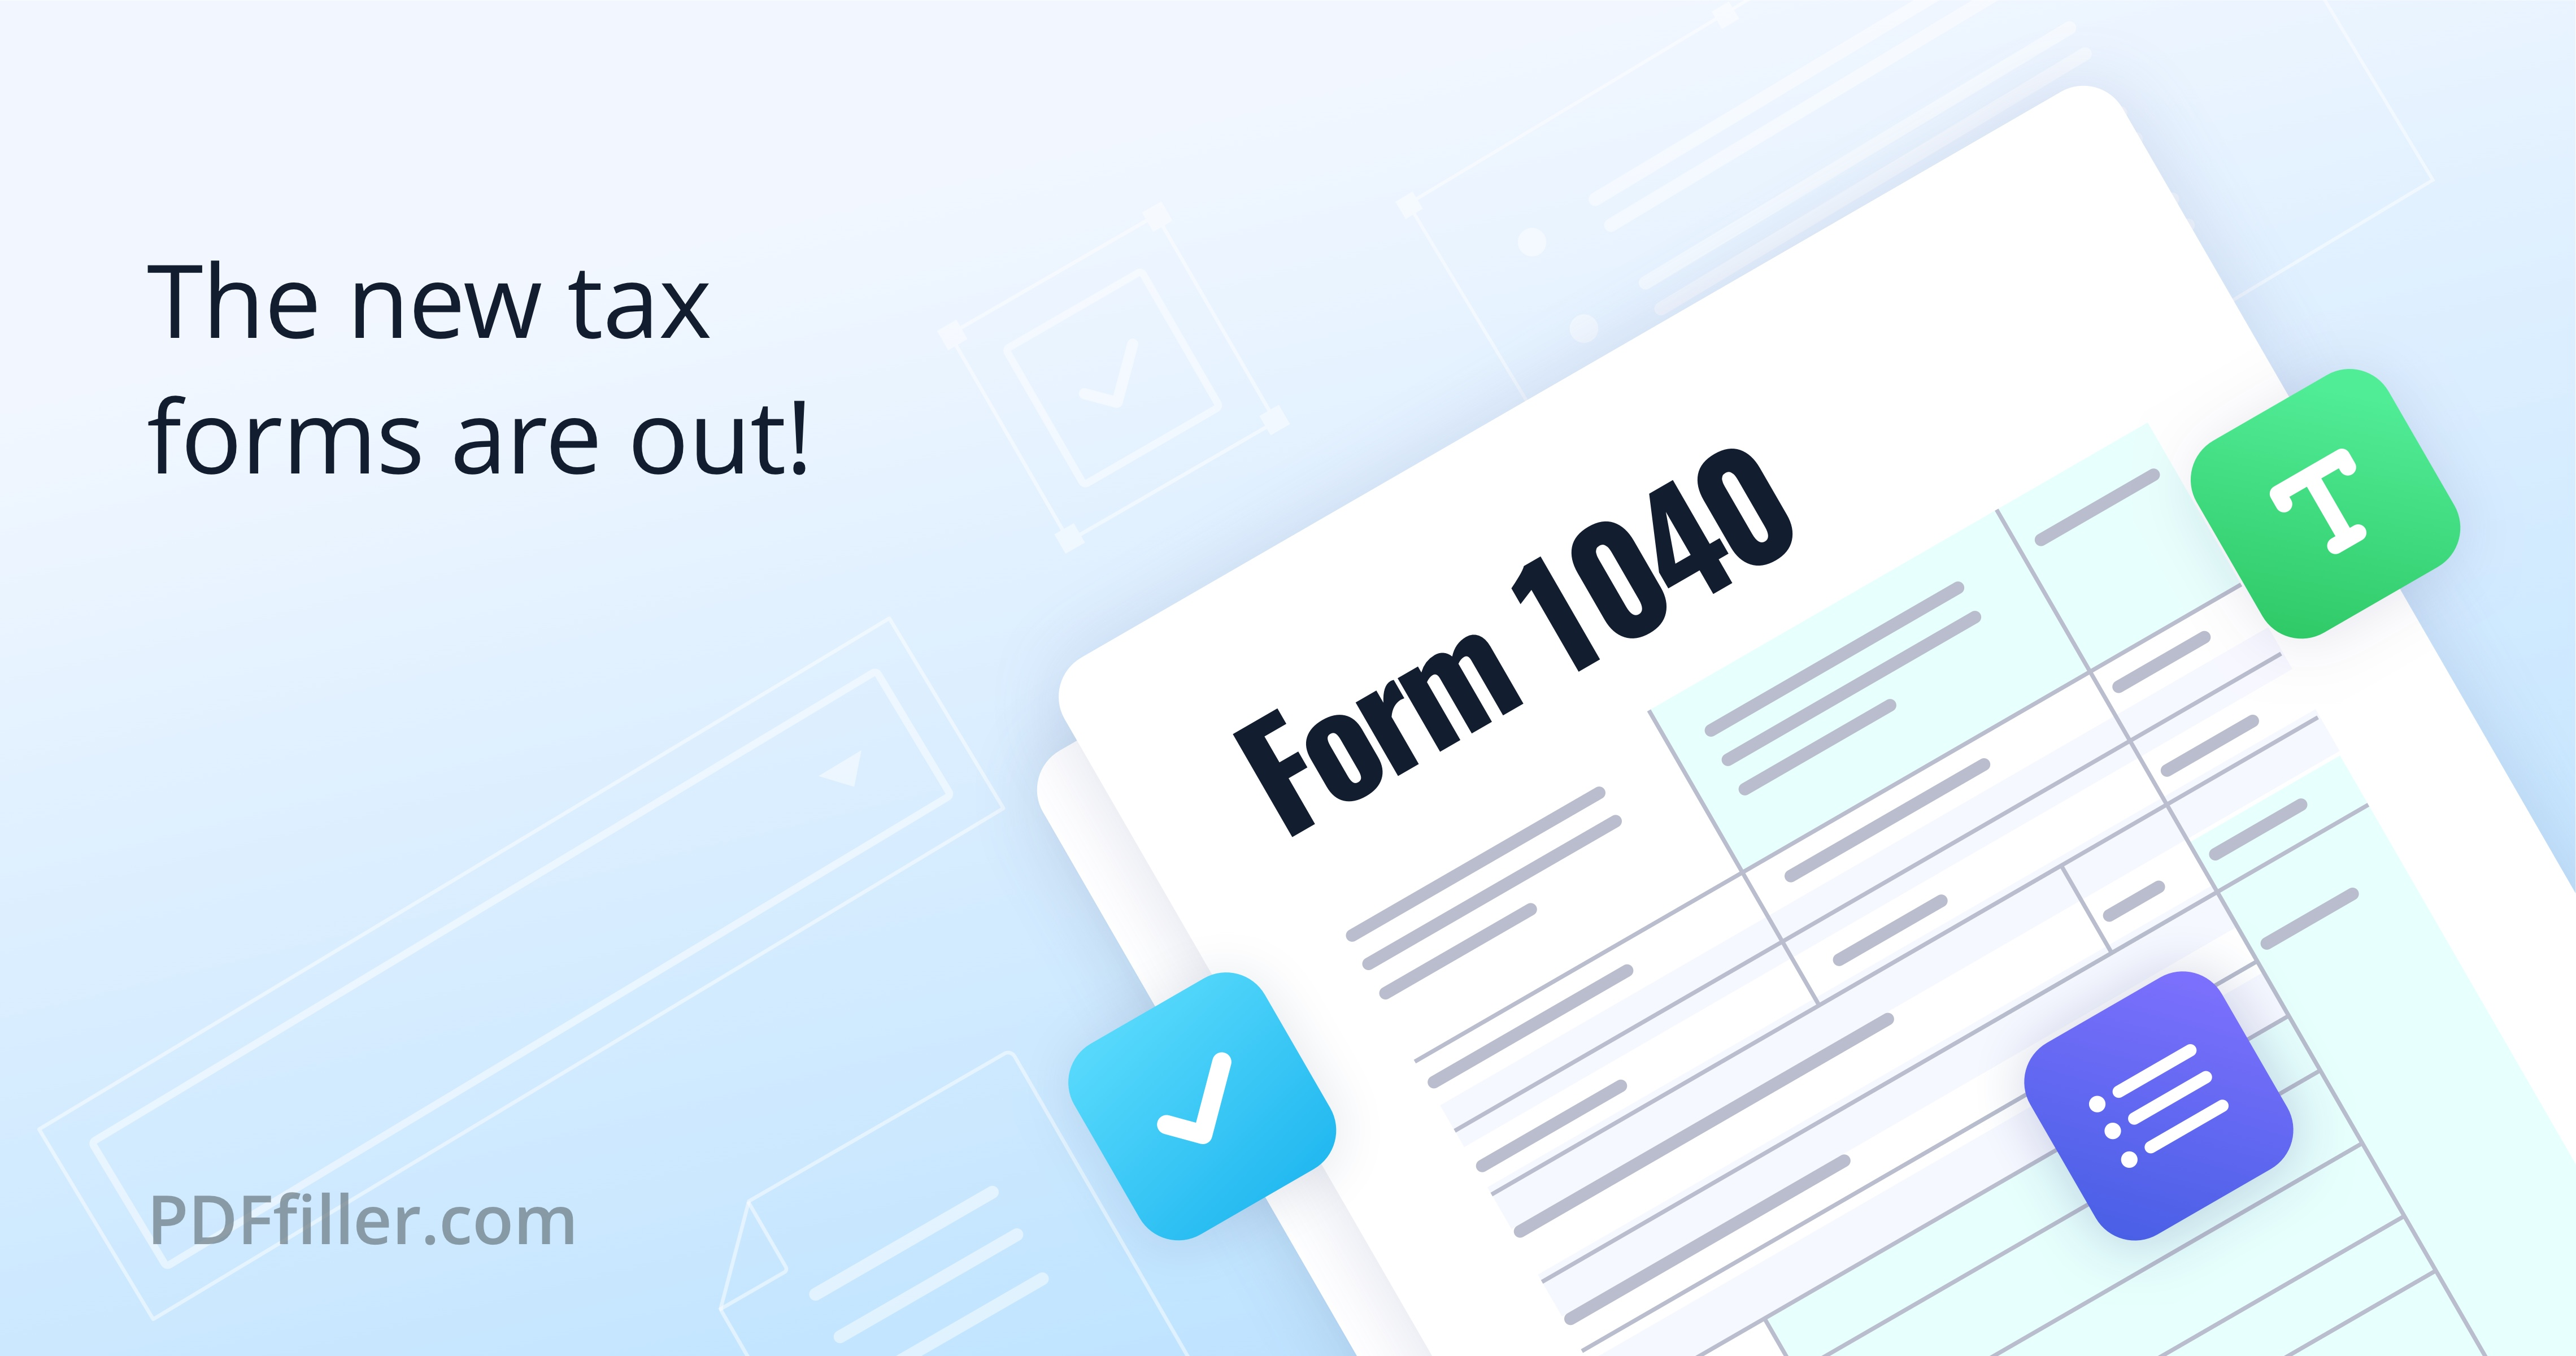 Irs Form For Easier Format And New Schedules